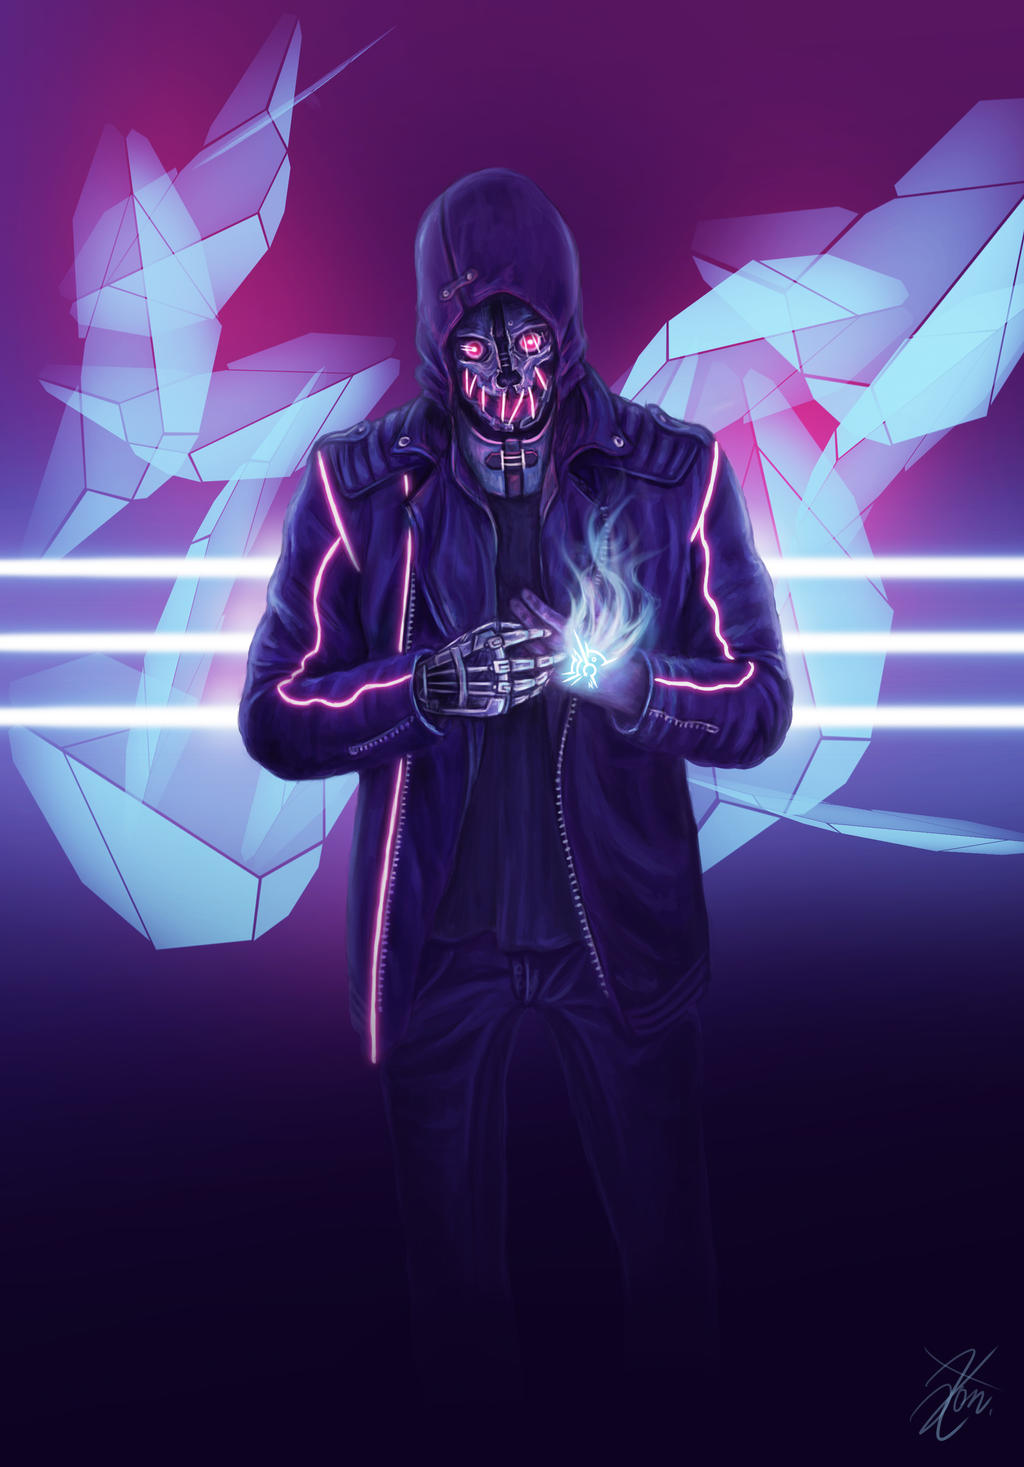 Cyber Corvo by c0nNy on DeviantArt